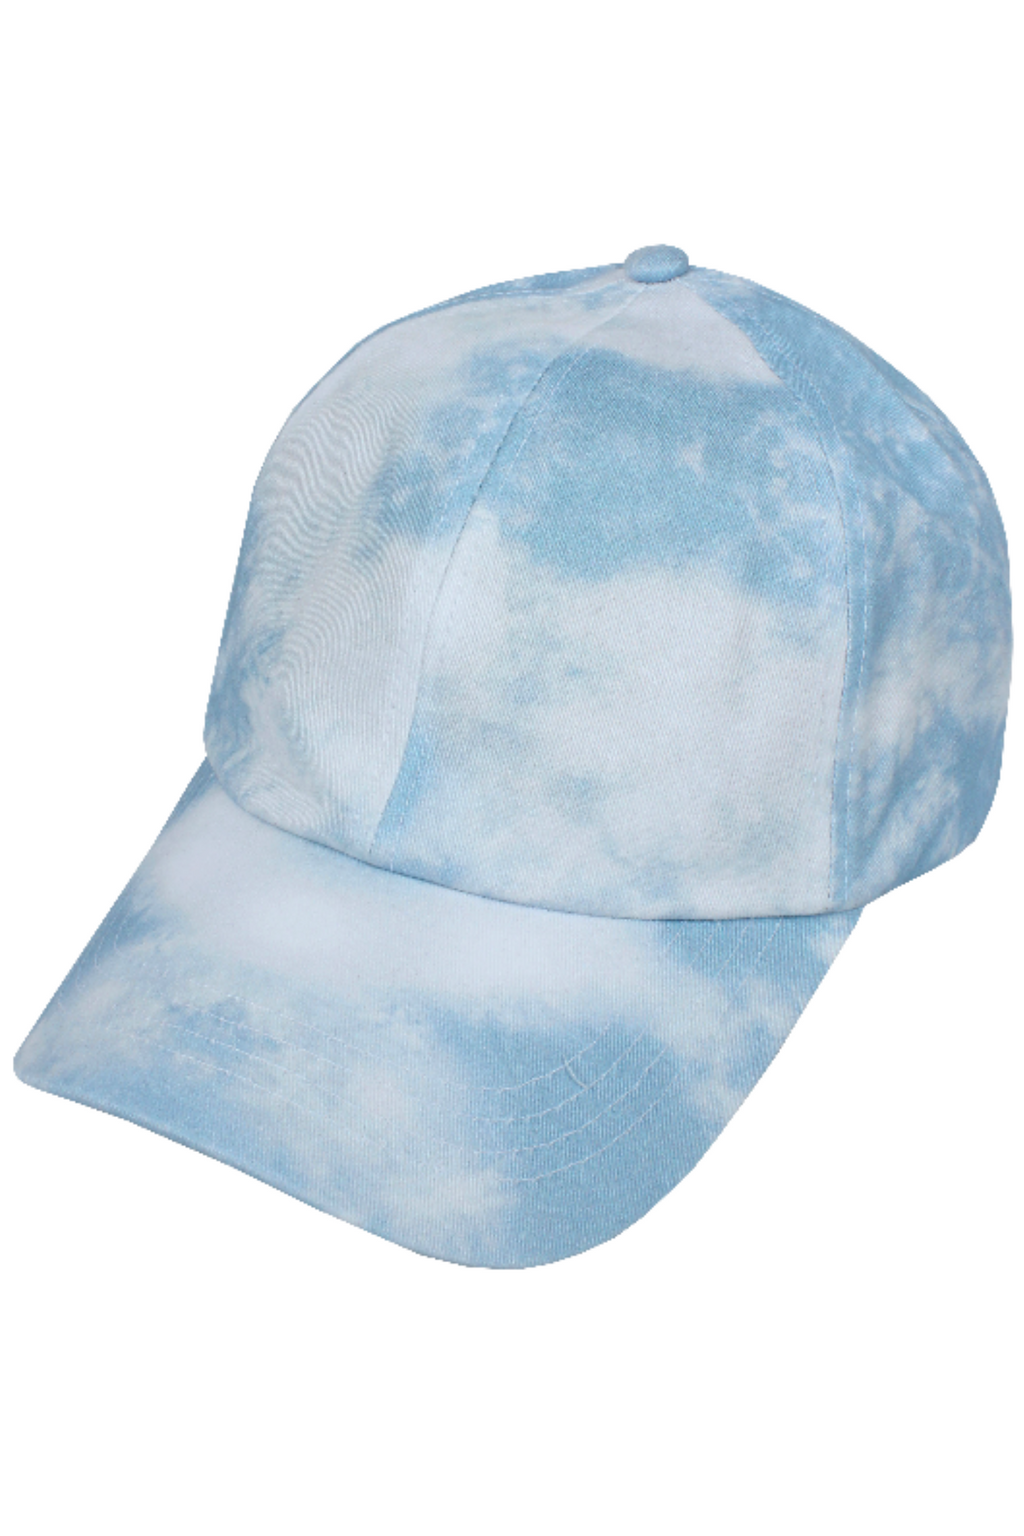 FWCAP6226 - Tie Dye Baseball Cap - David and Young Fashion Accessories